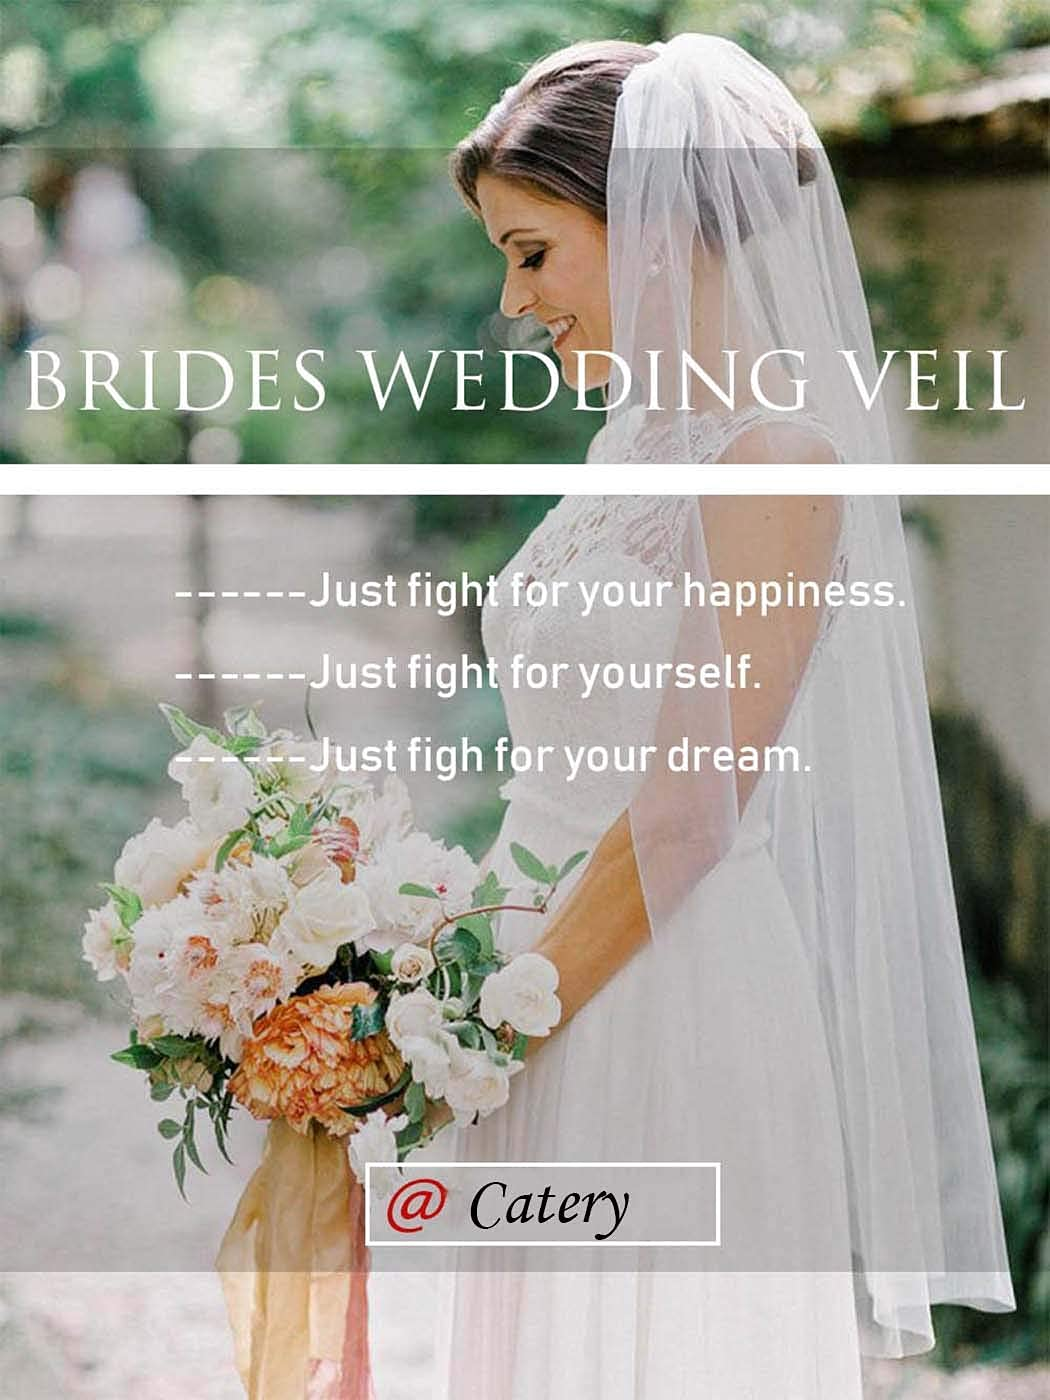 Catery Wedding Bridal Veils with Comb Ivory Flower Edge Tulle Veil Bride Hair Accessories for Brides 1 Tier Fingertip Length